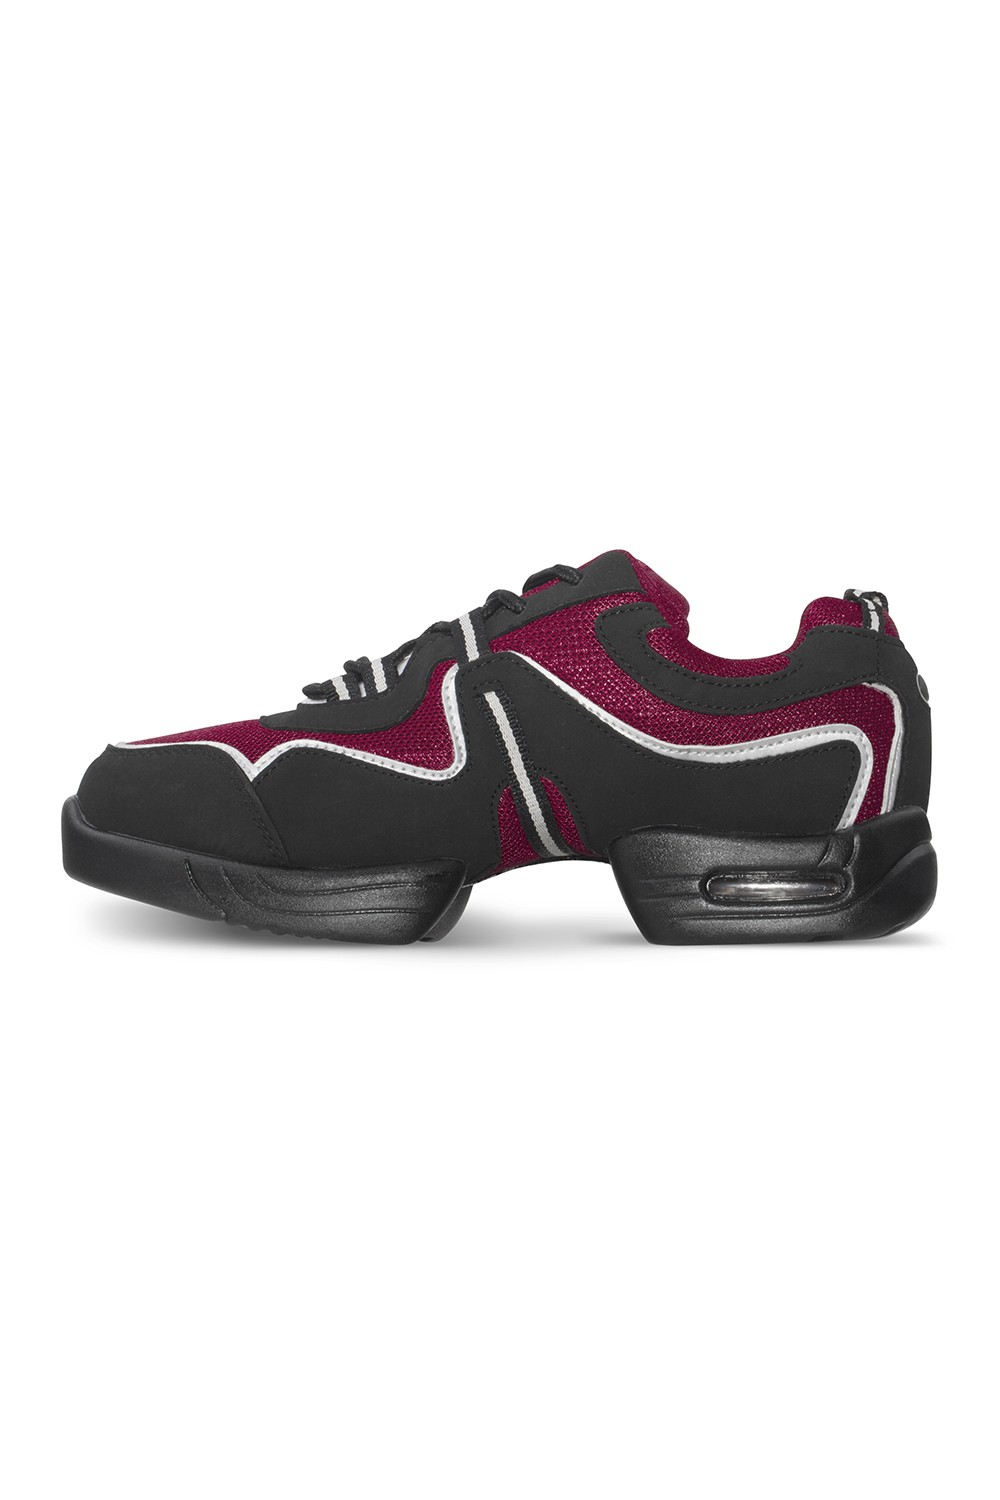 Nrg Wave Women's Dance Sneakers